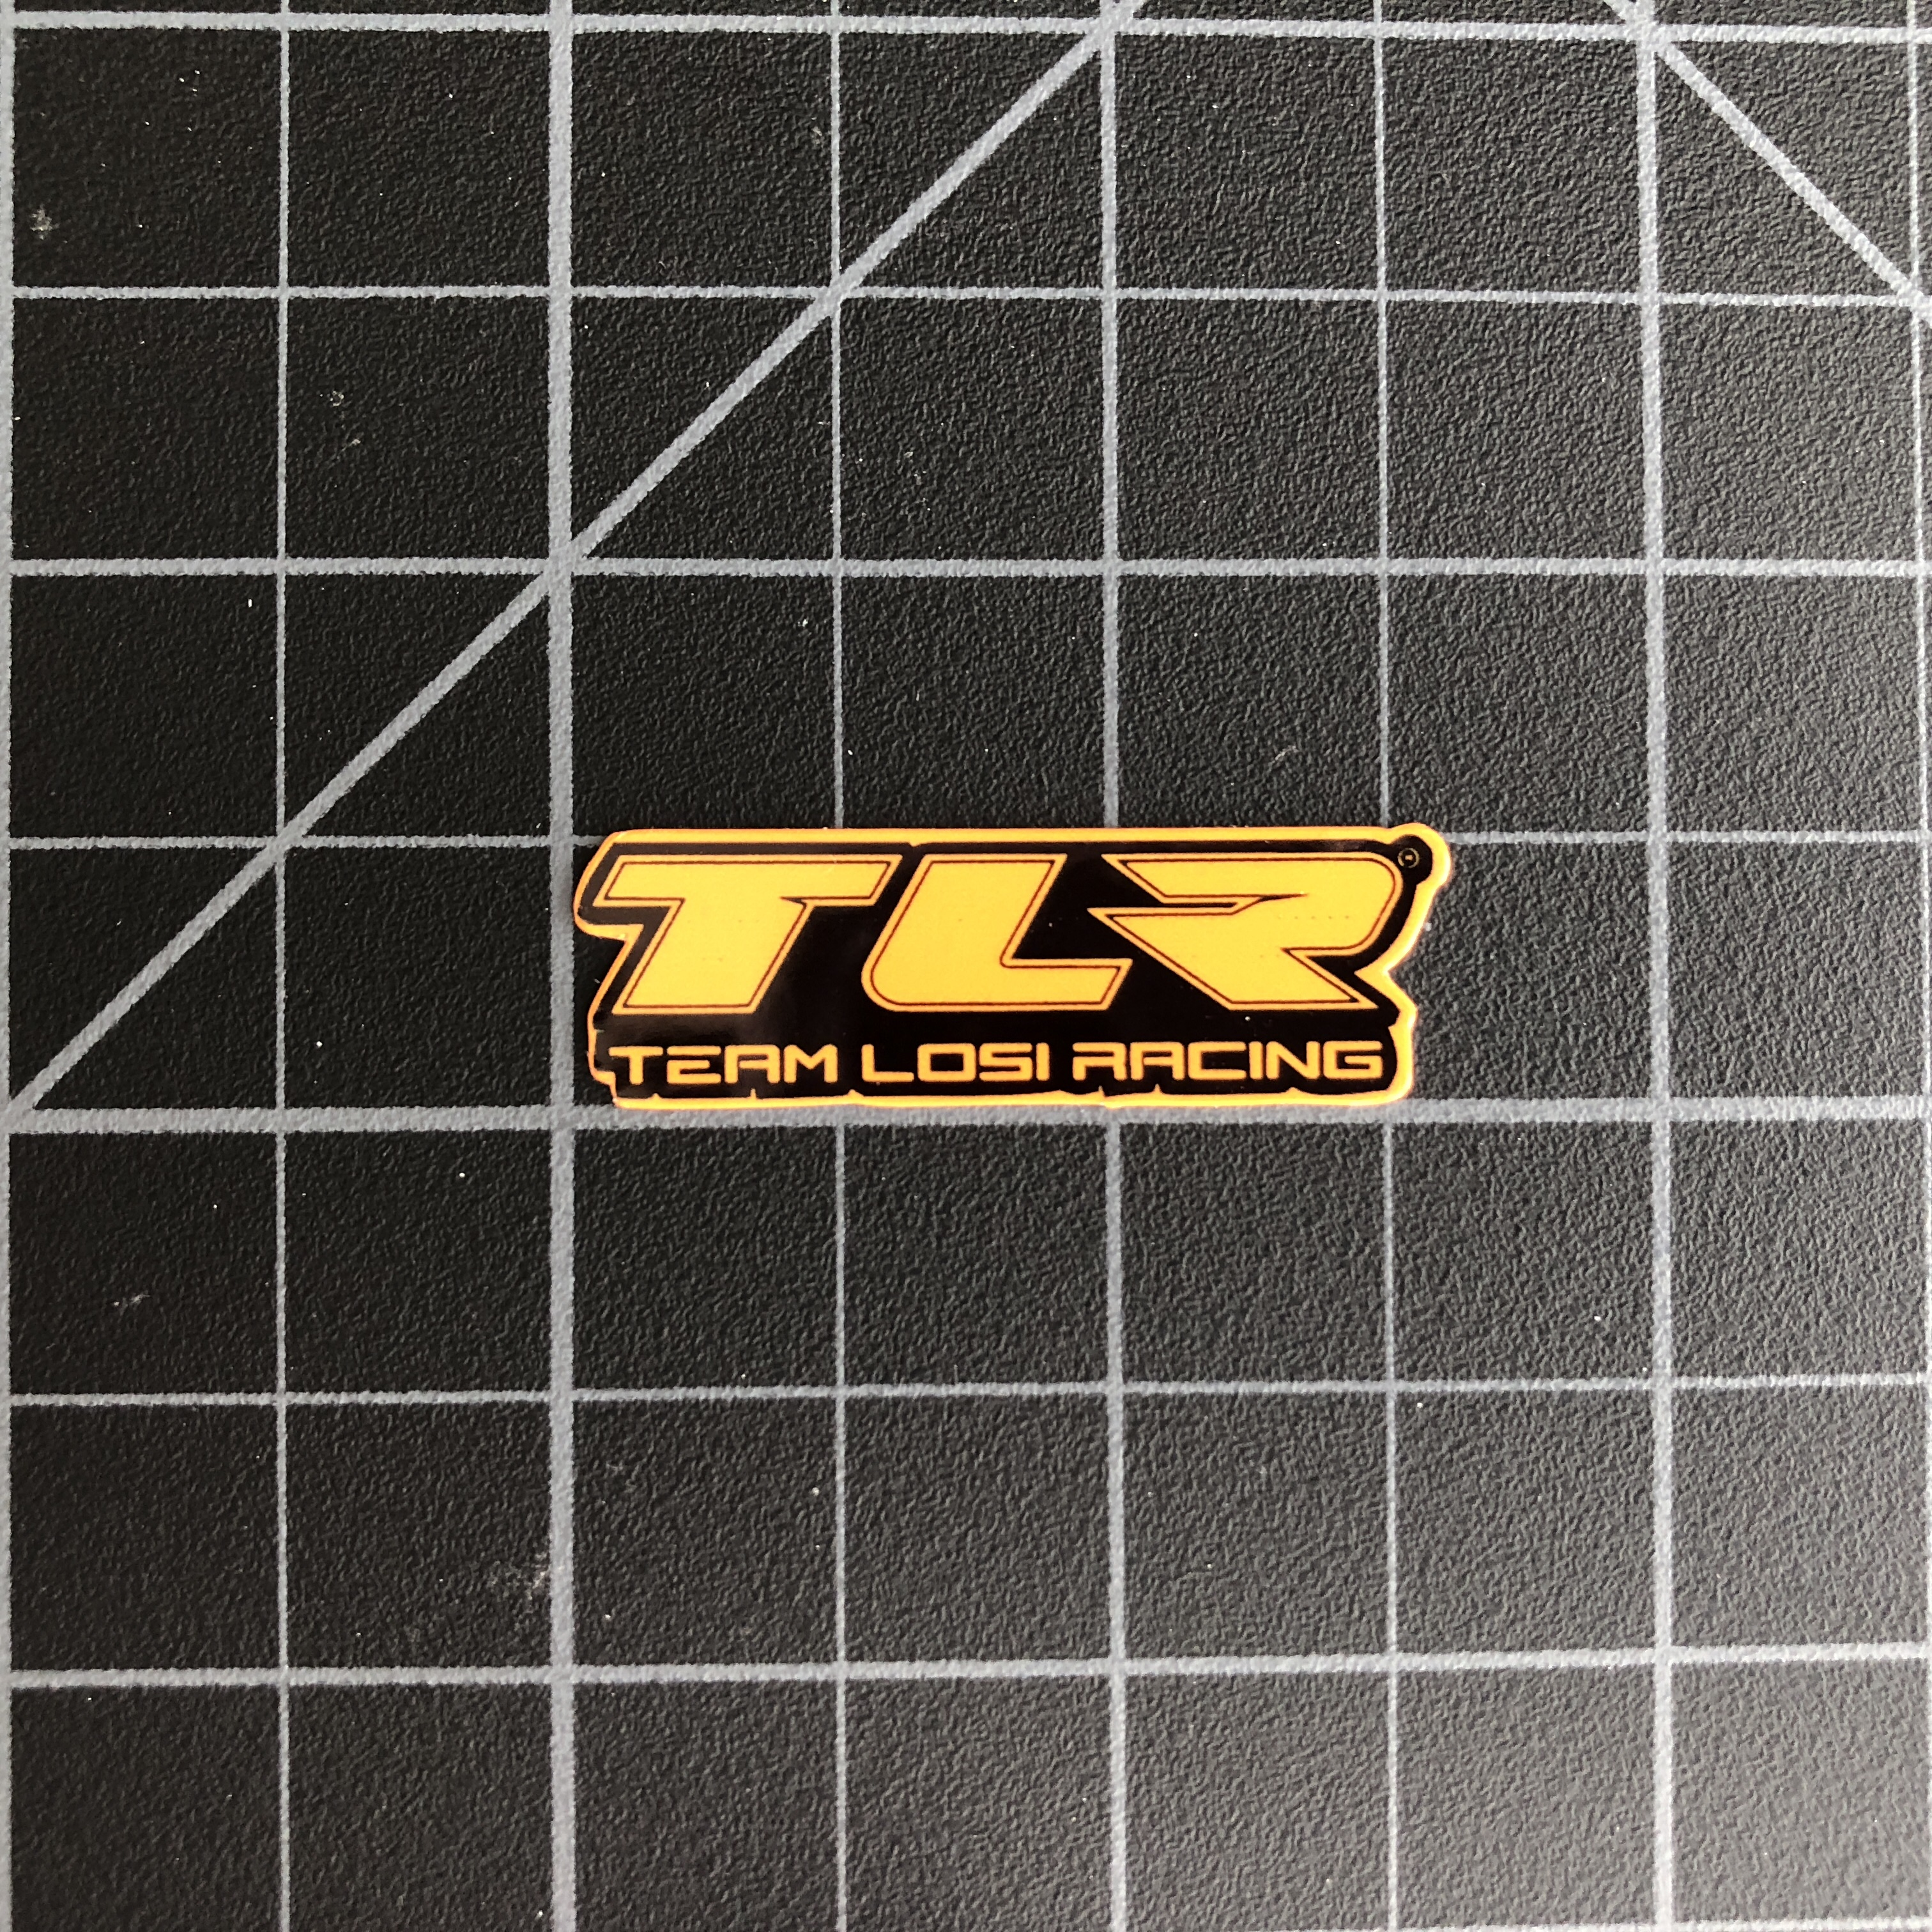 Custom 1 5″ rc sponsor stickers view larger image